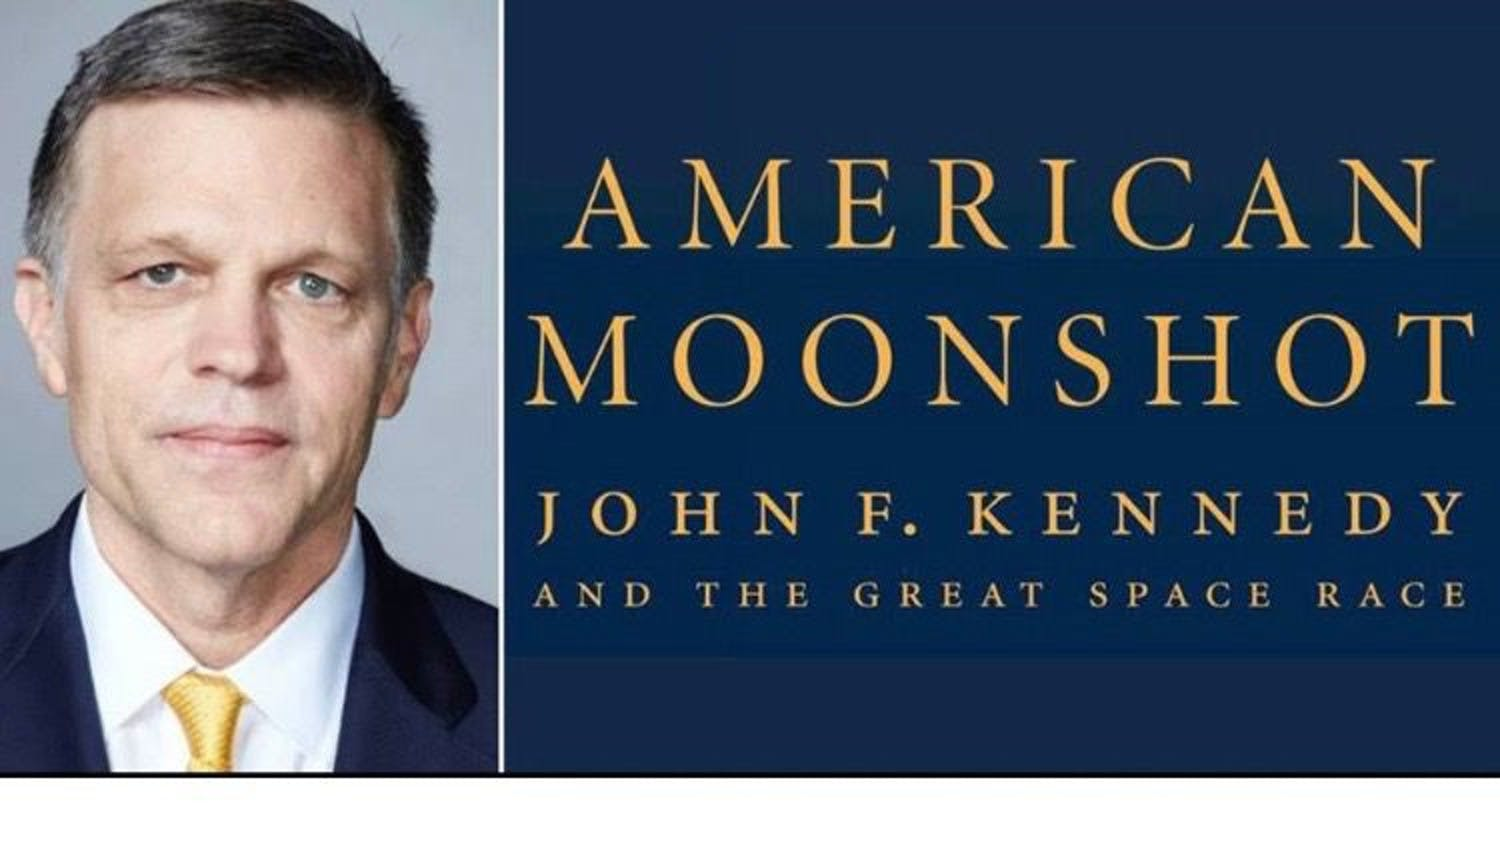 Historian and author Douglas Brinkley will speak at 6 p.m. on April 19 in the Buddy & Anne MacKay Auditorium in Pugh Hall.